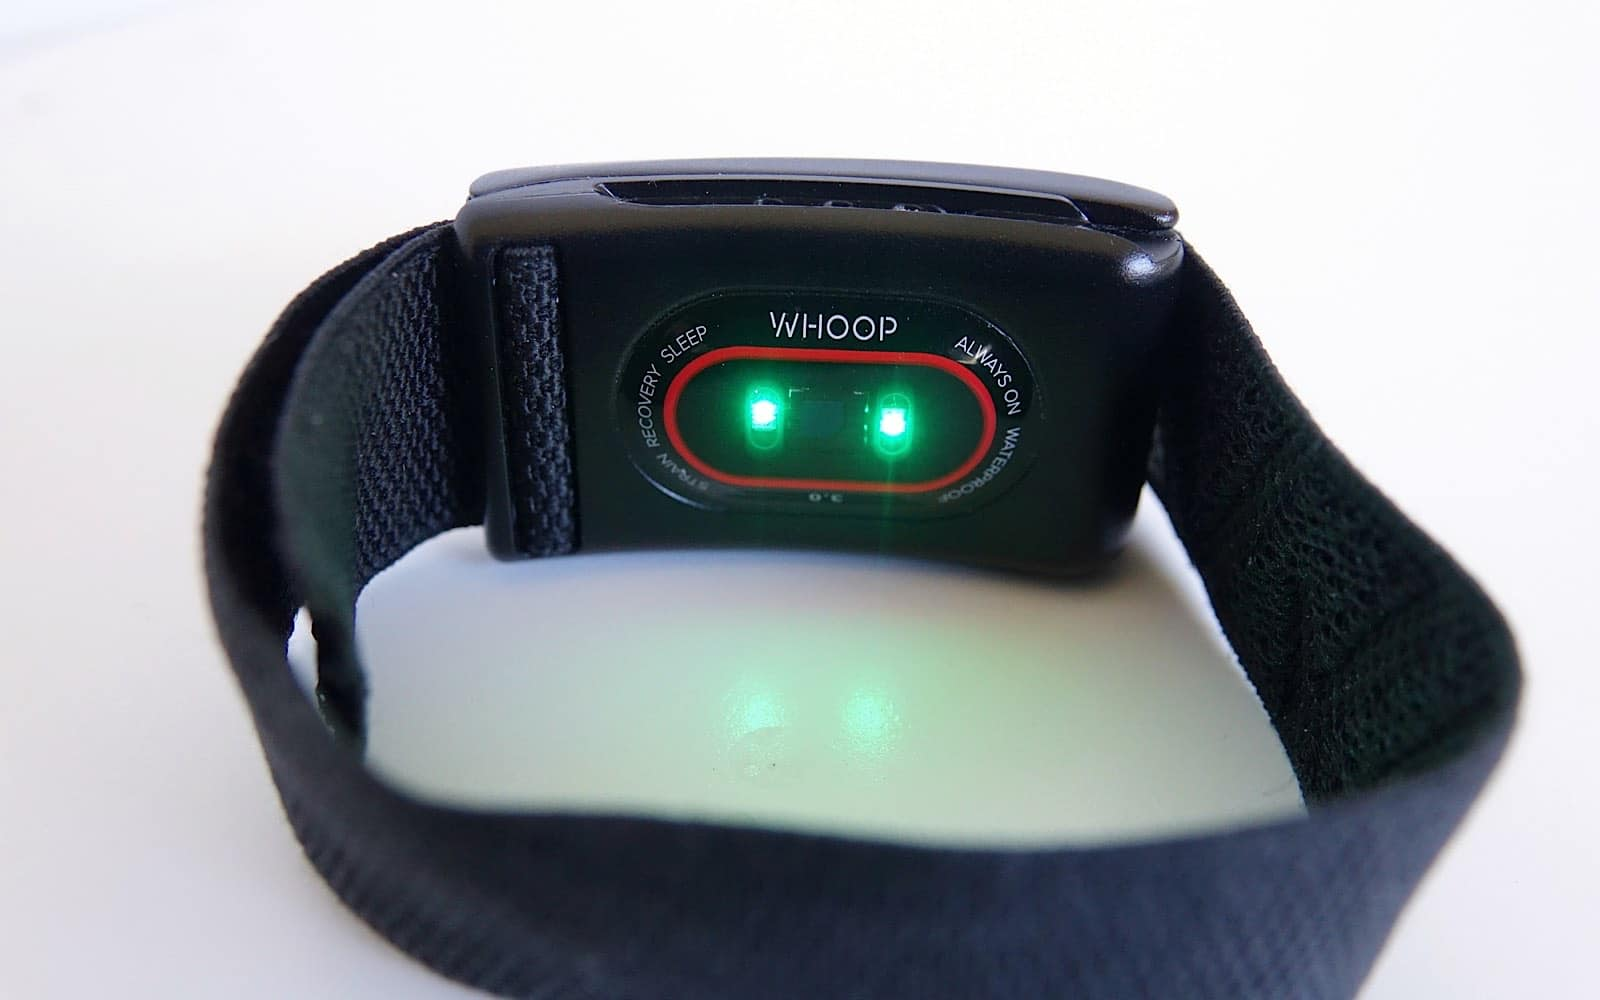 The Whoop 3.0 band shines green lights for heart rate tracking.